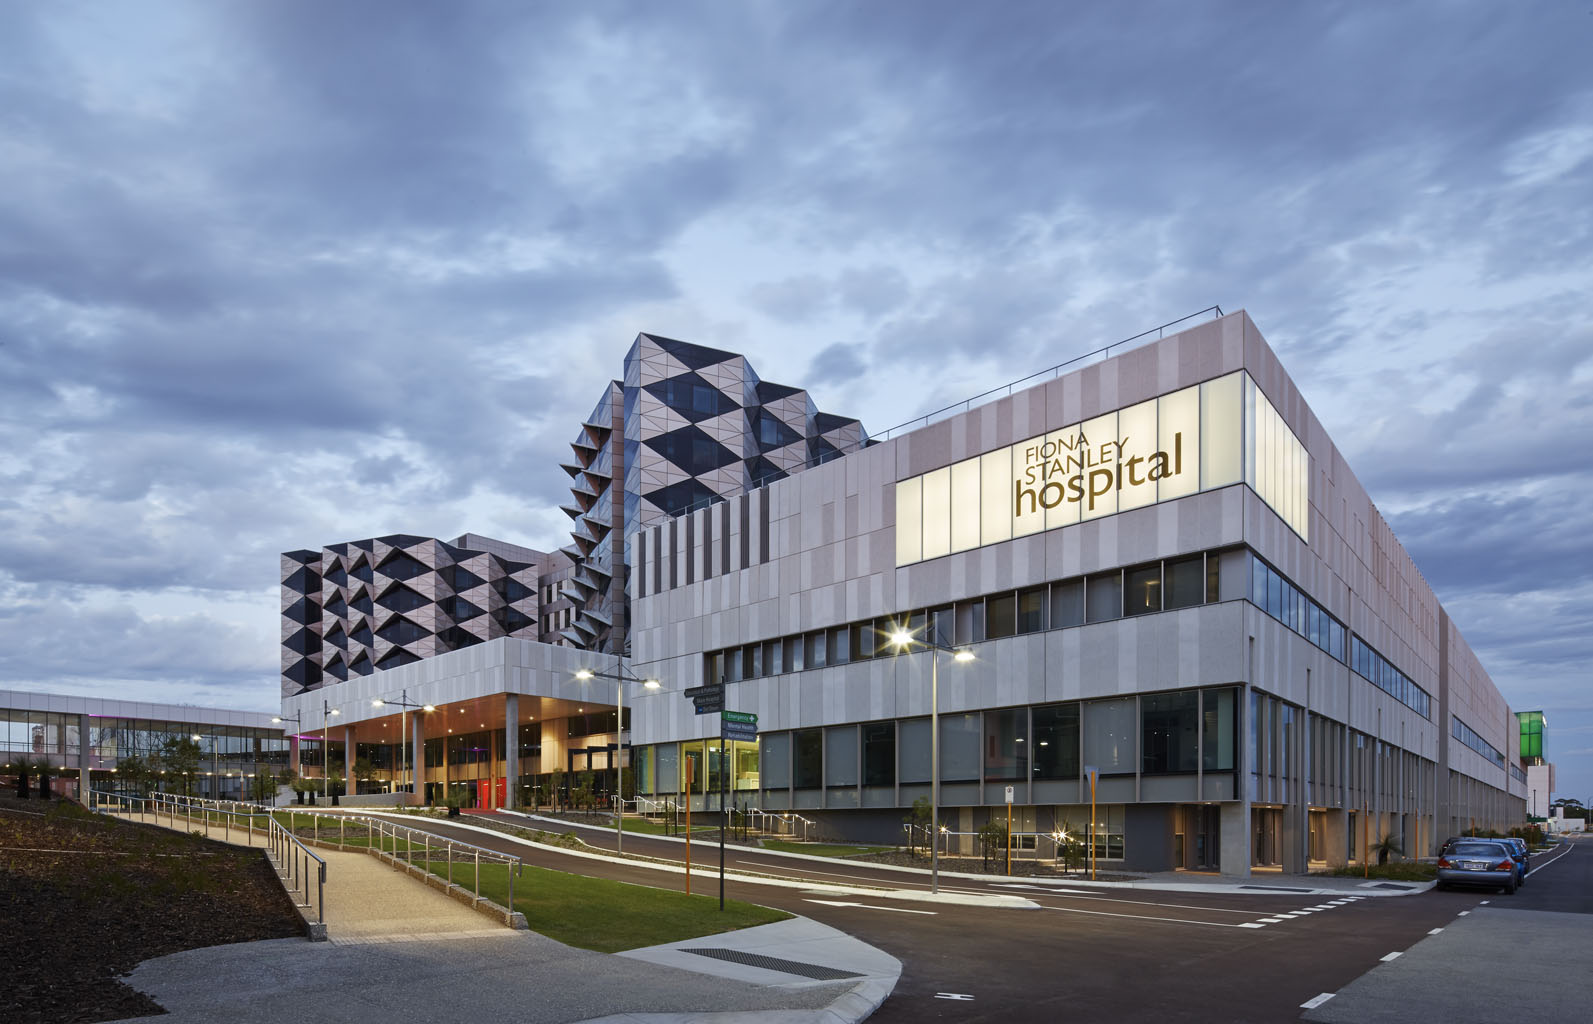 Choiceone Fiona Stanley Hospital Opening October